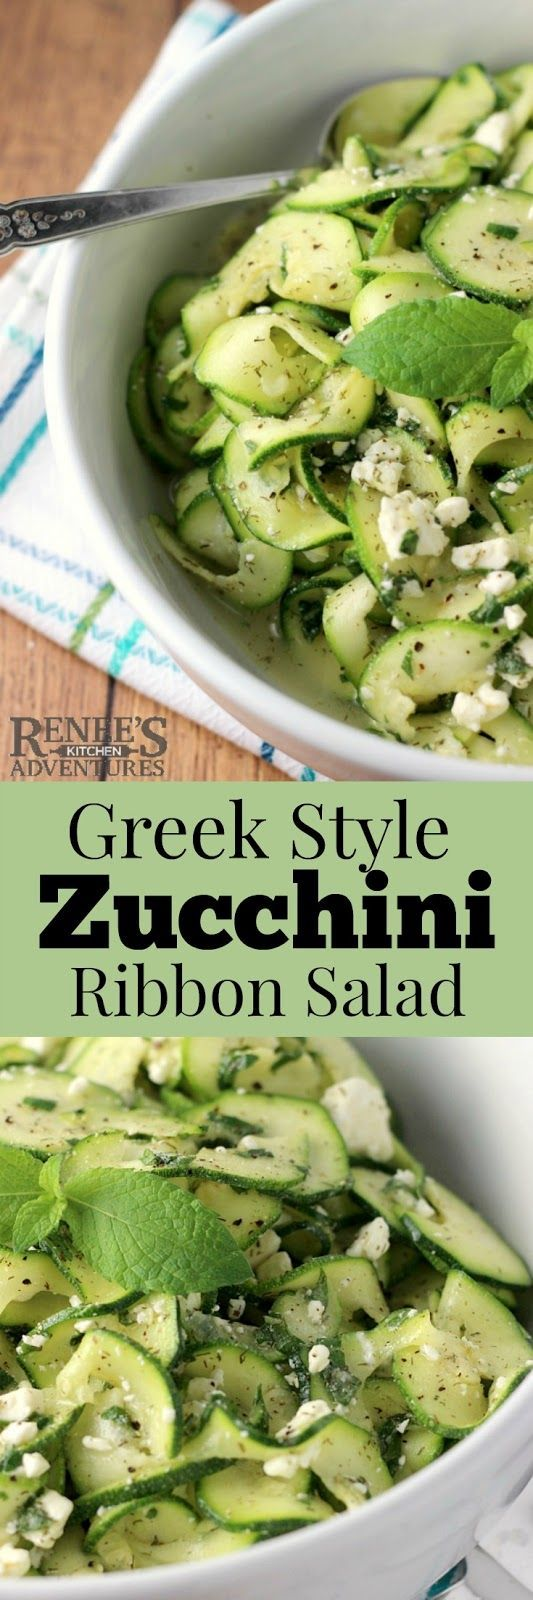 Greek Style Zucchini Ribbon Salad   by Renee's Kitchen Adventures is an easy, healthy recipe for raw zucchini salad. #rkarecipes #zucchini